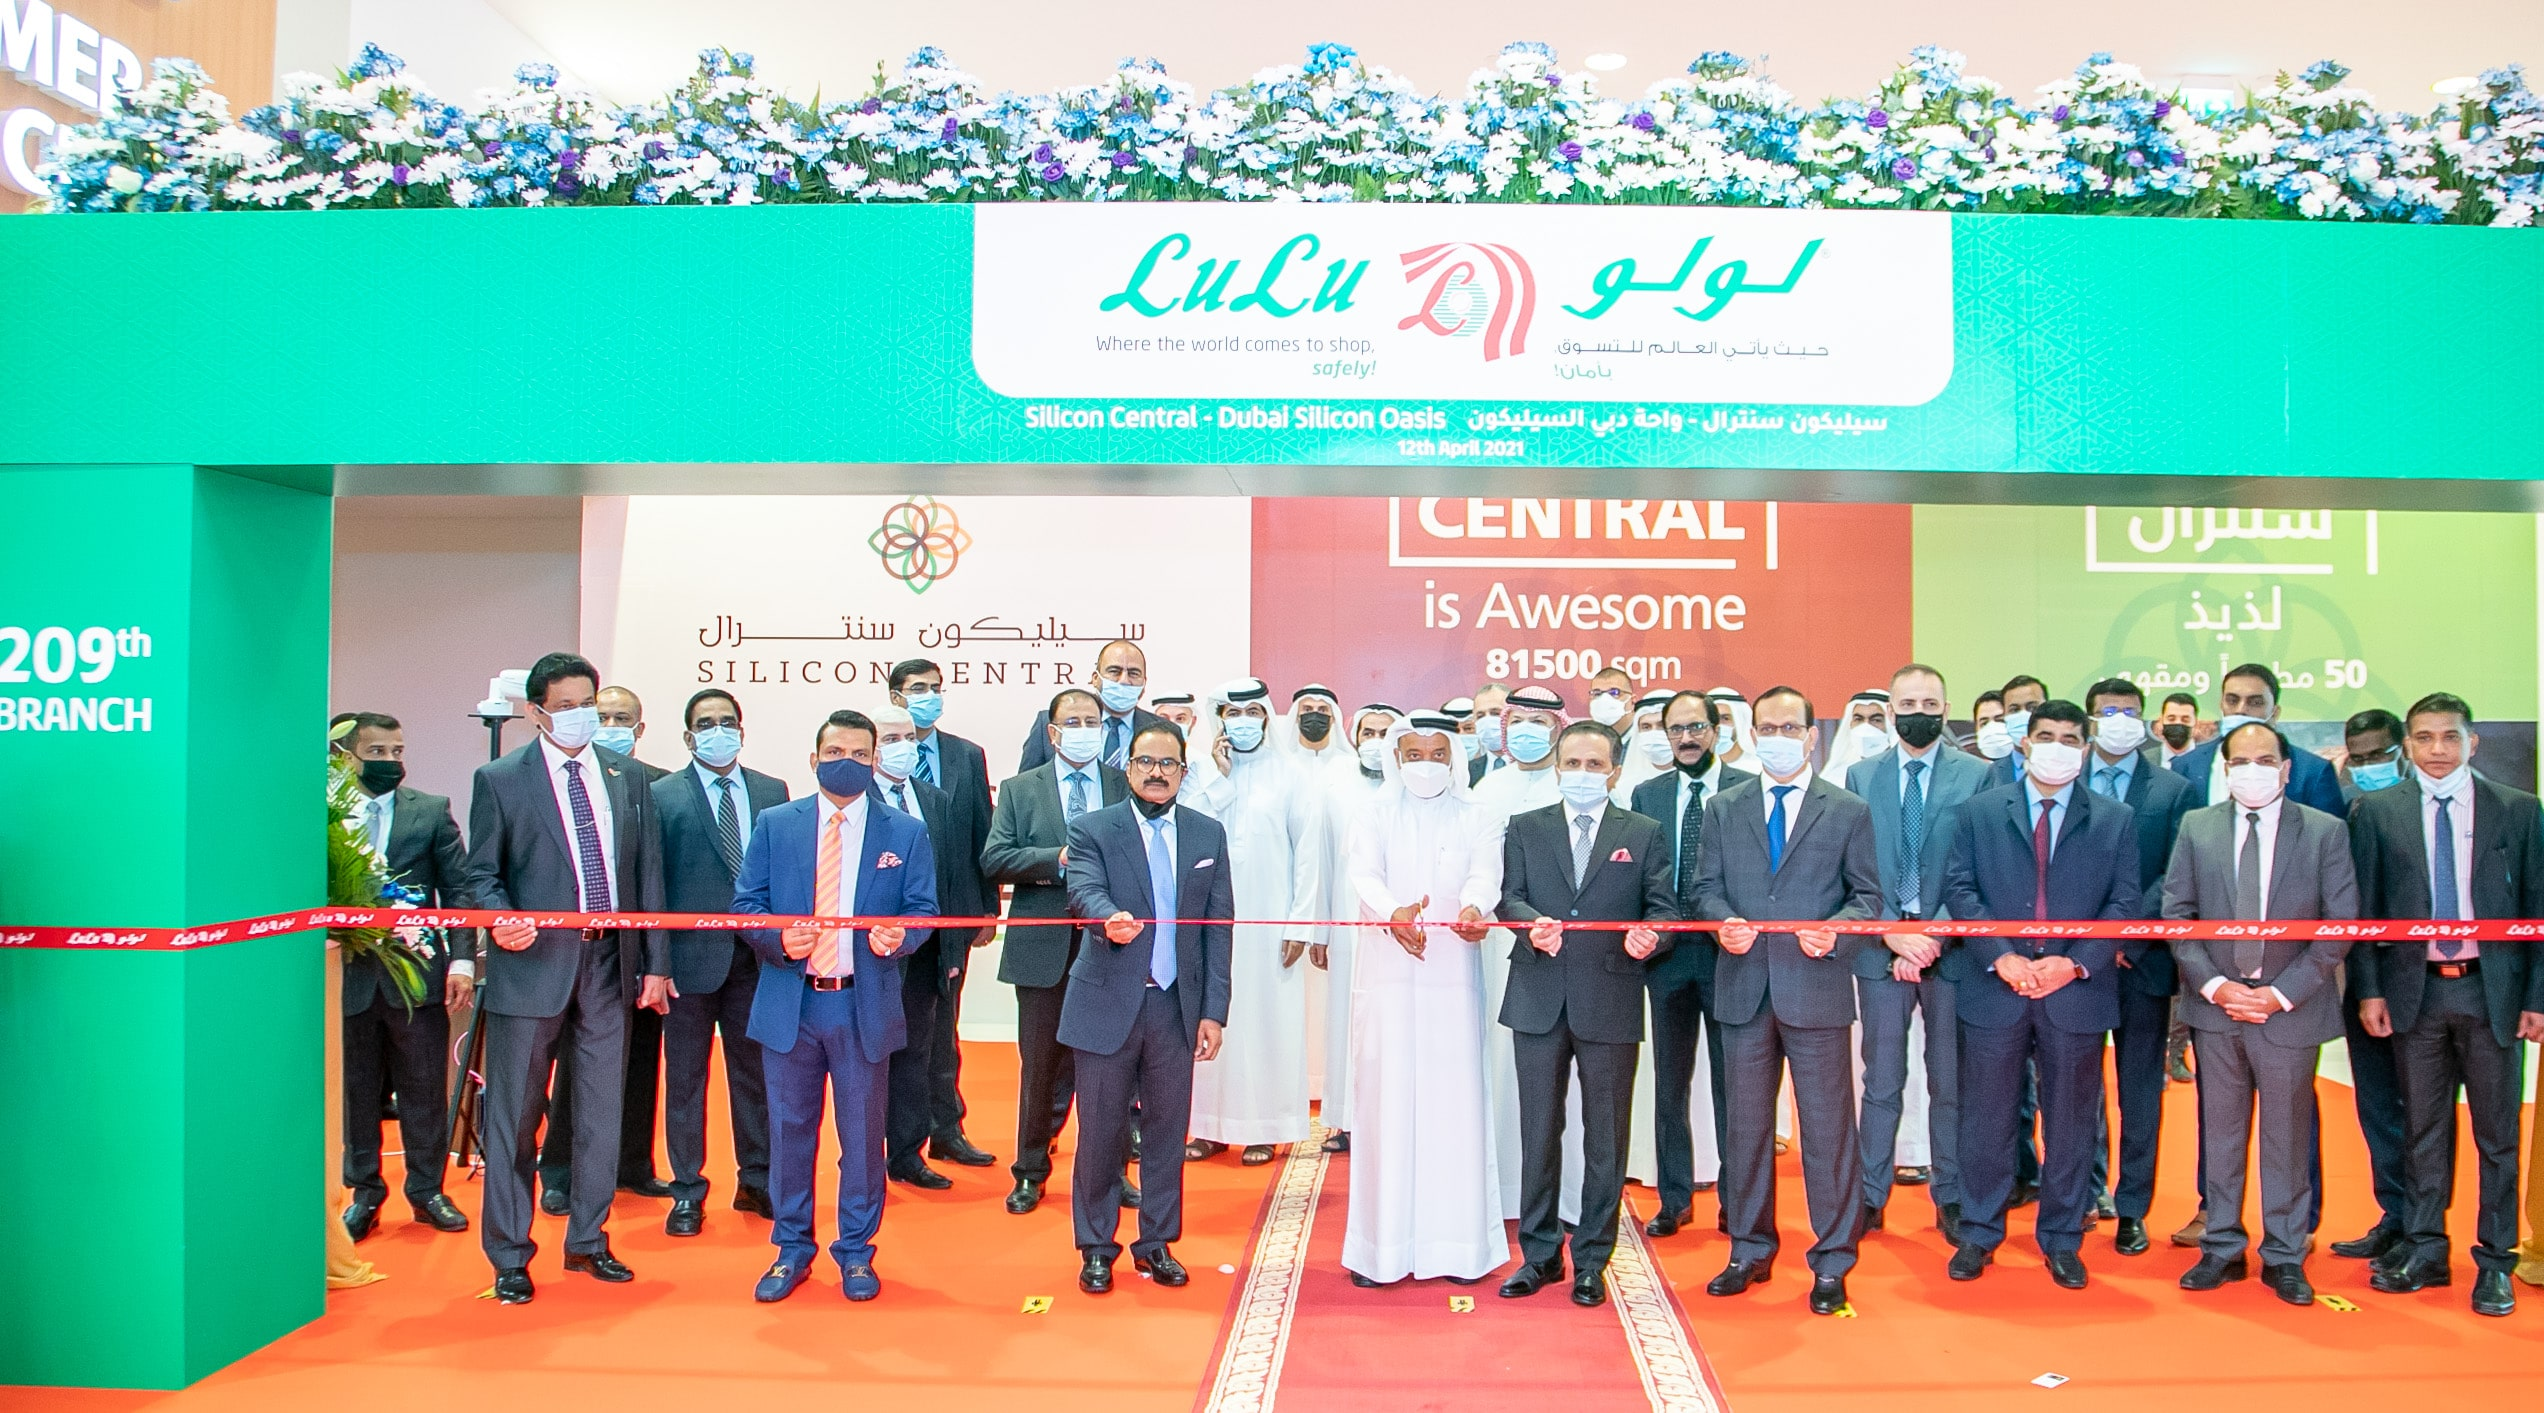 LuLu Expands Further in Dubai - Launches New Hypermarket and E-commerce Fulfillment Centre